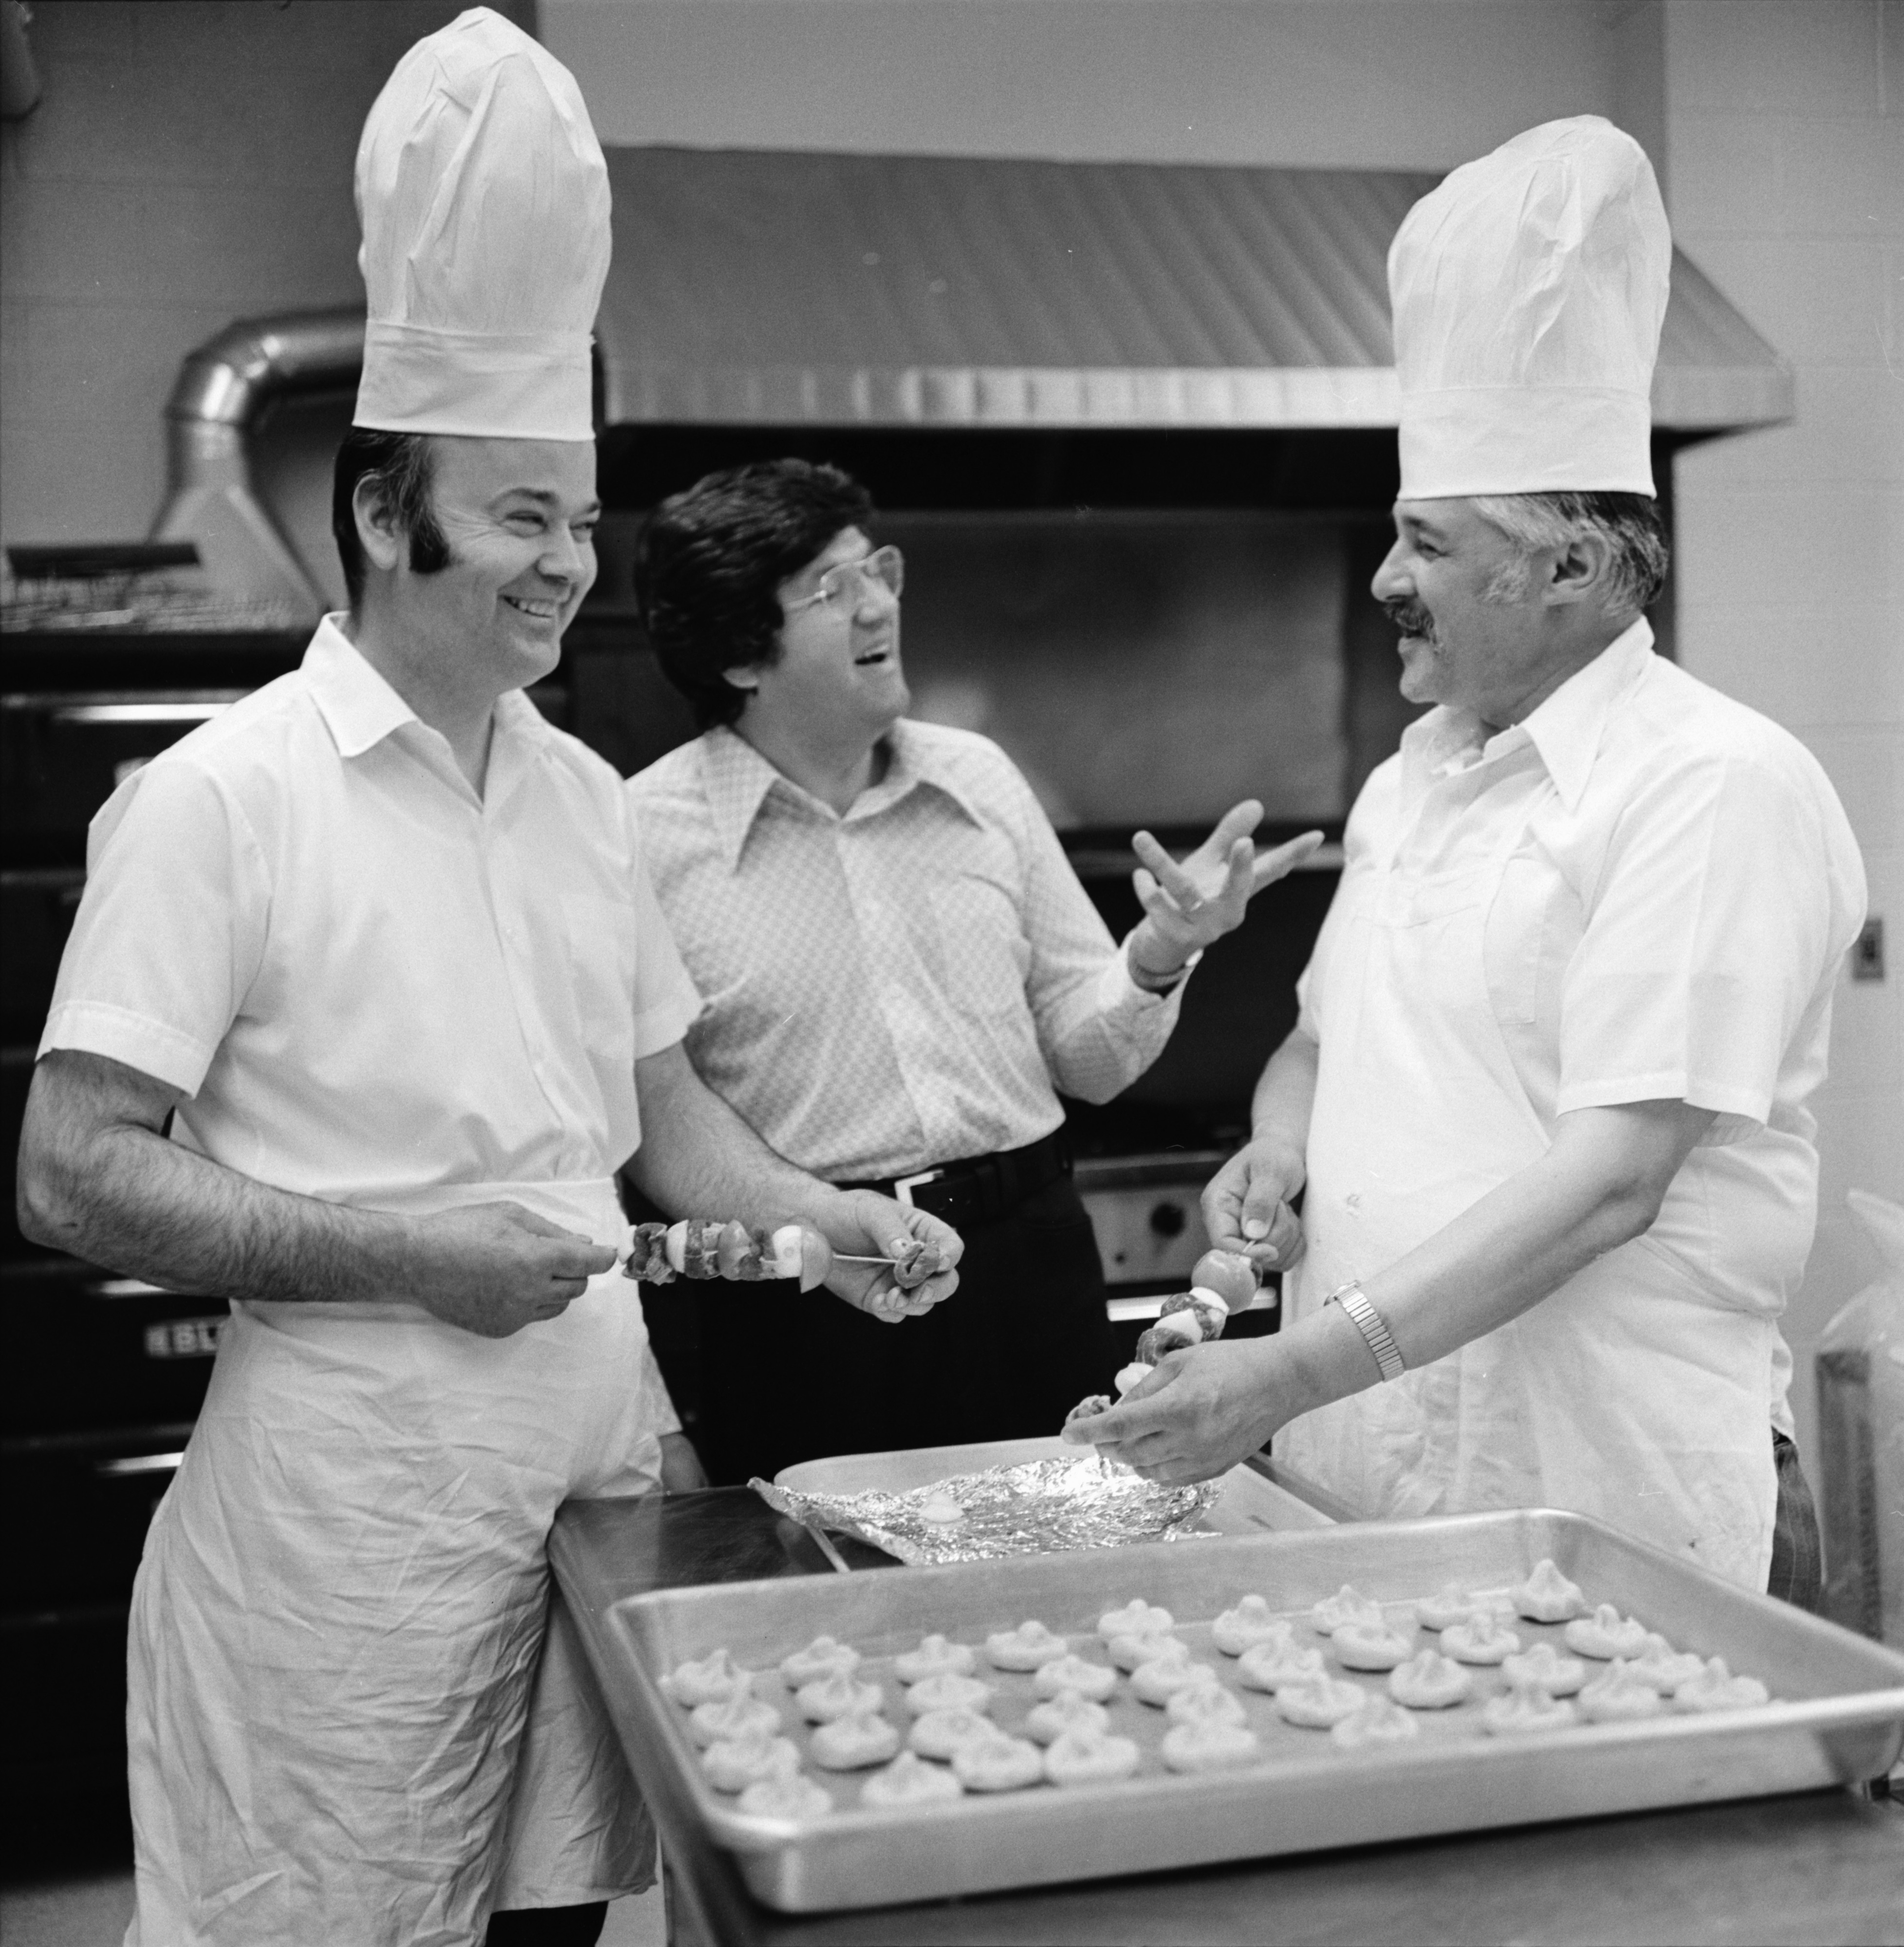 Preparing Food for St. Nicholas Greek Orthodox Greek Festival, May 1973 image